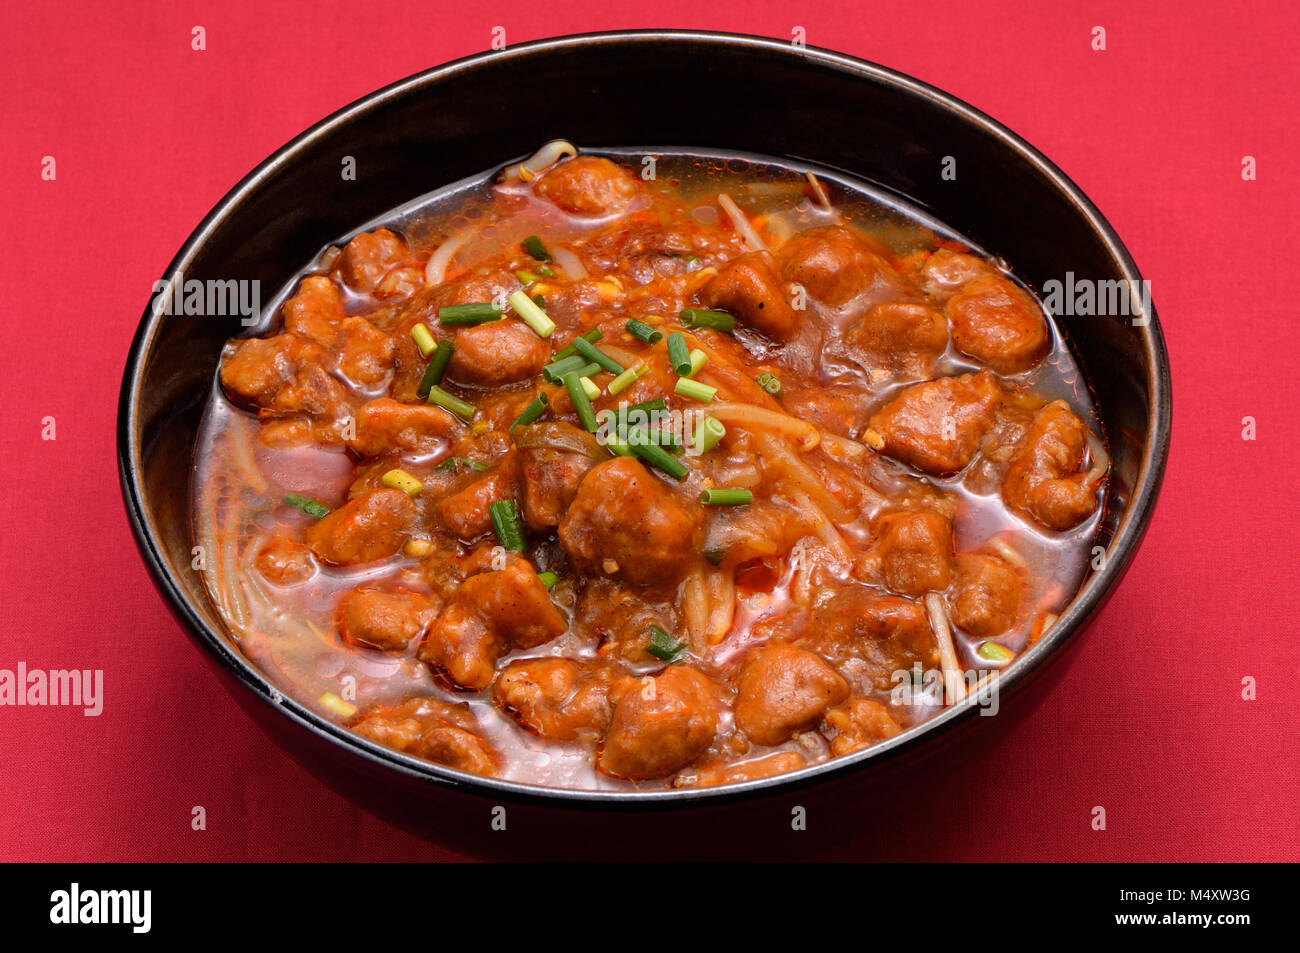 Dandan noodles with chicken - Stock Image